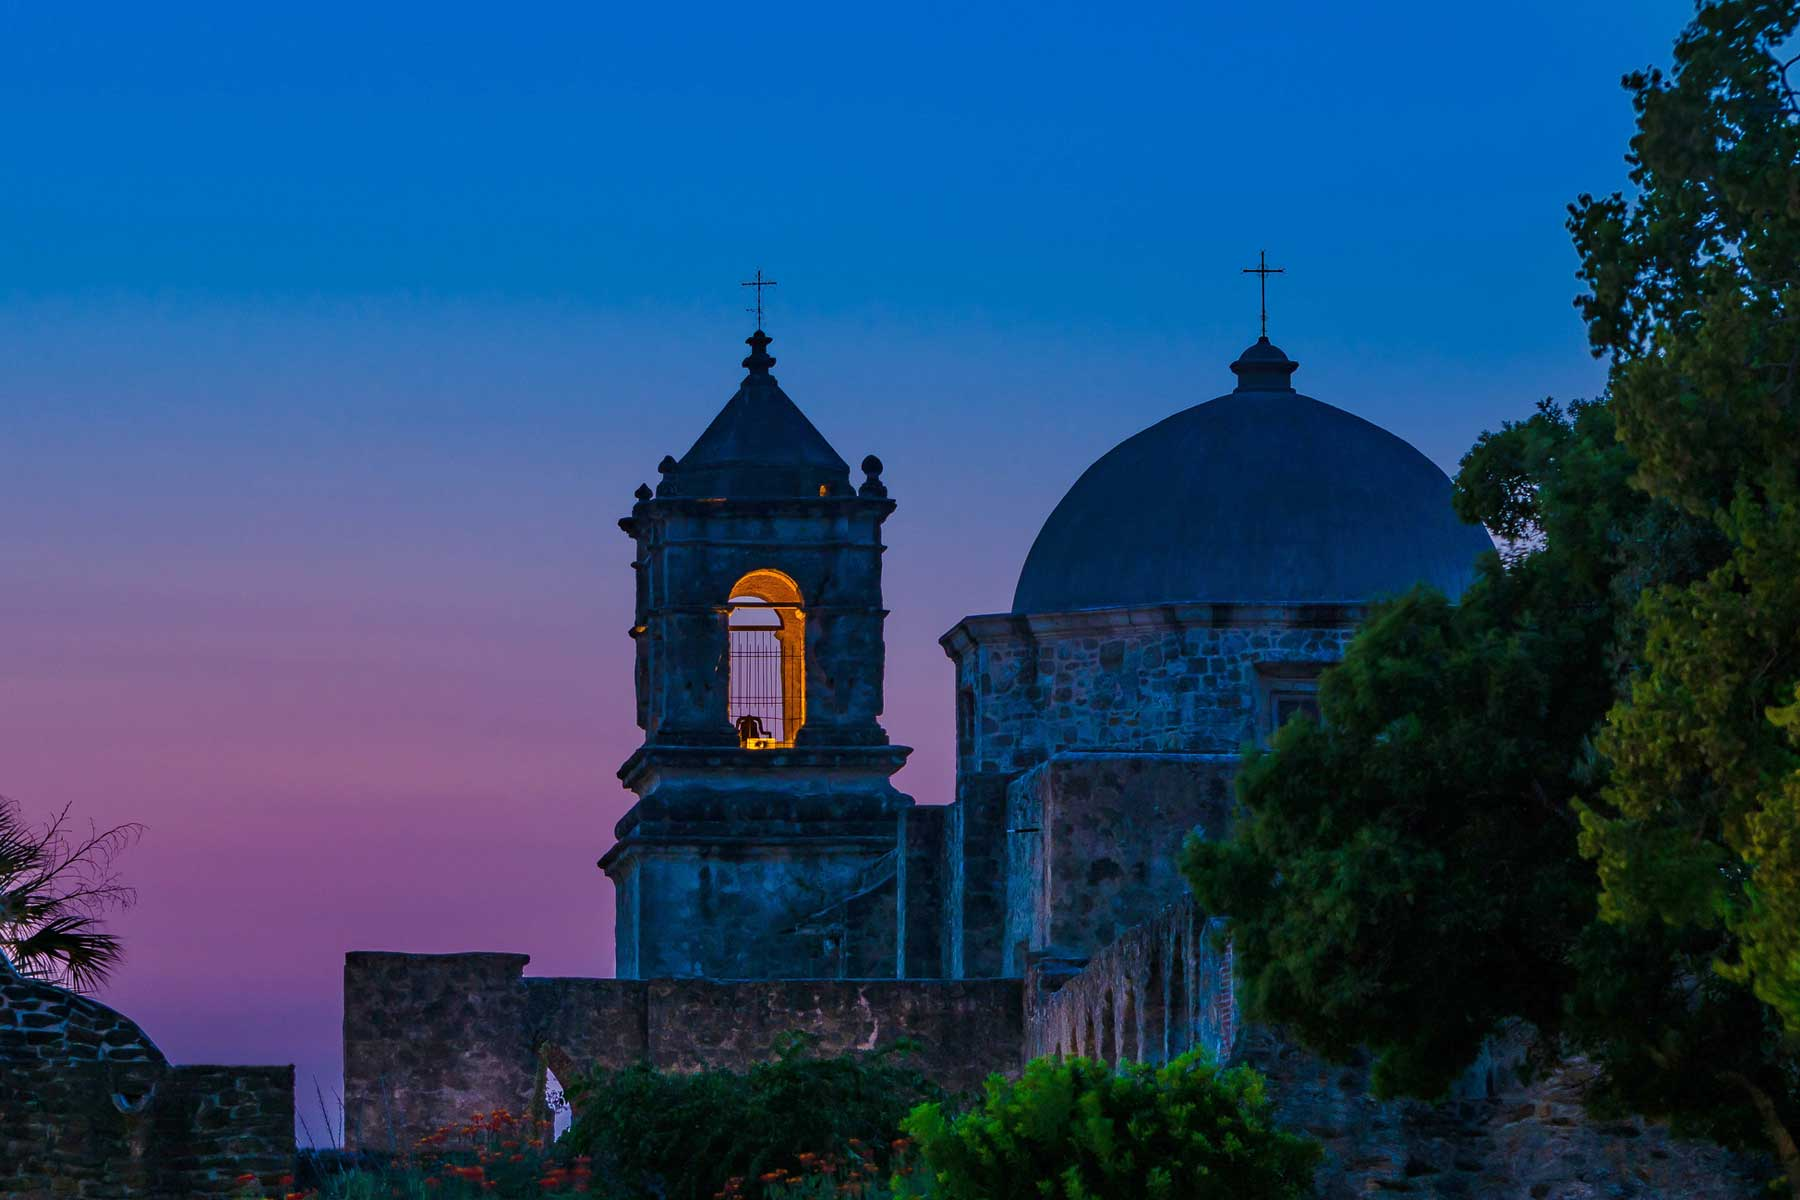 This is San Jose Mission in San Antonio, Texas. The Catholic Church was established in the 18th century by Spanish colonists, and is recognized by UNESCO as a World Heritage Site.